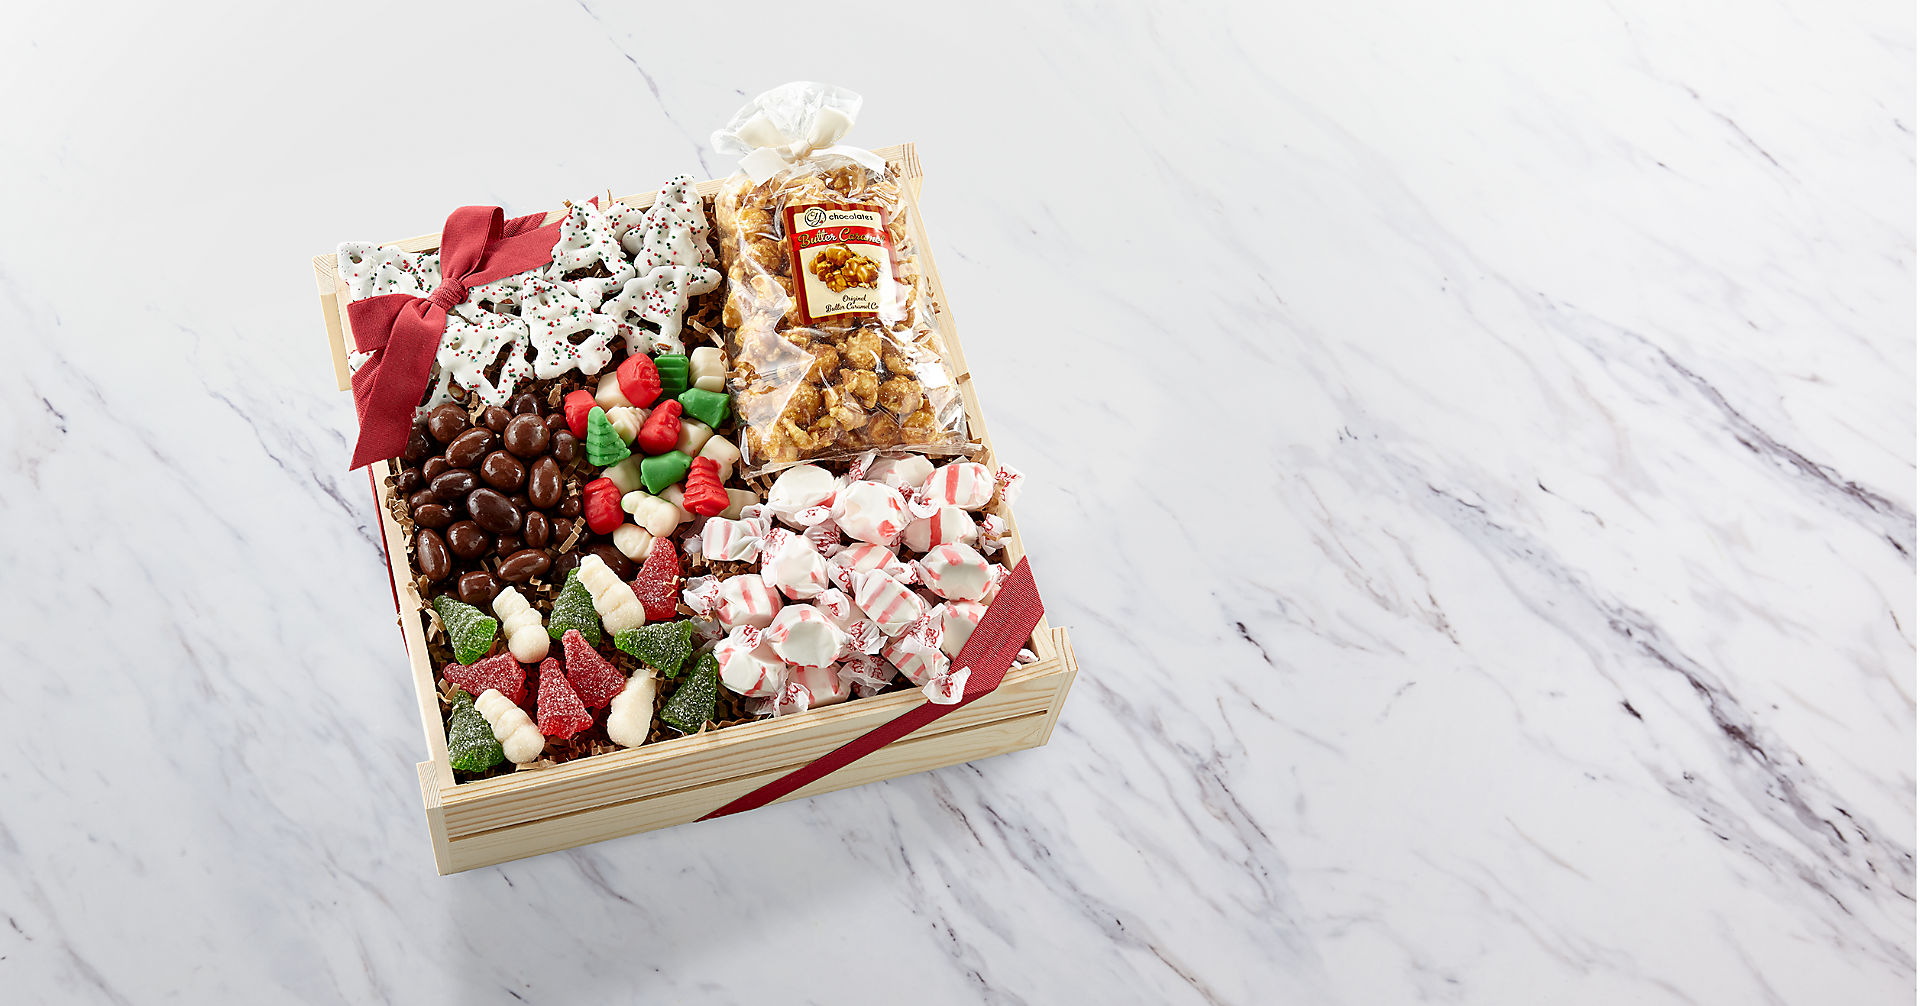 Holiday Delights Chocolate & Sweets Gourmet Gift Basket - GOOD - Image 1 Of 2